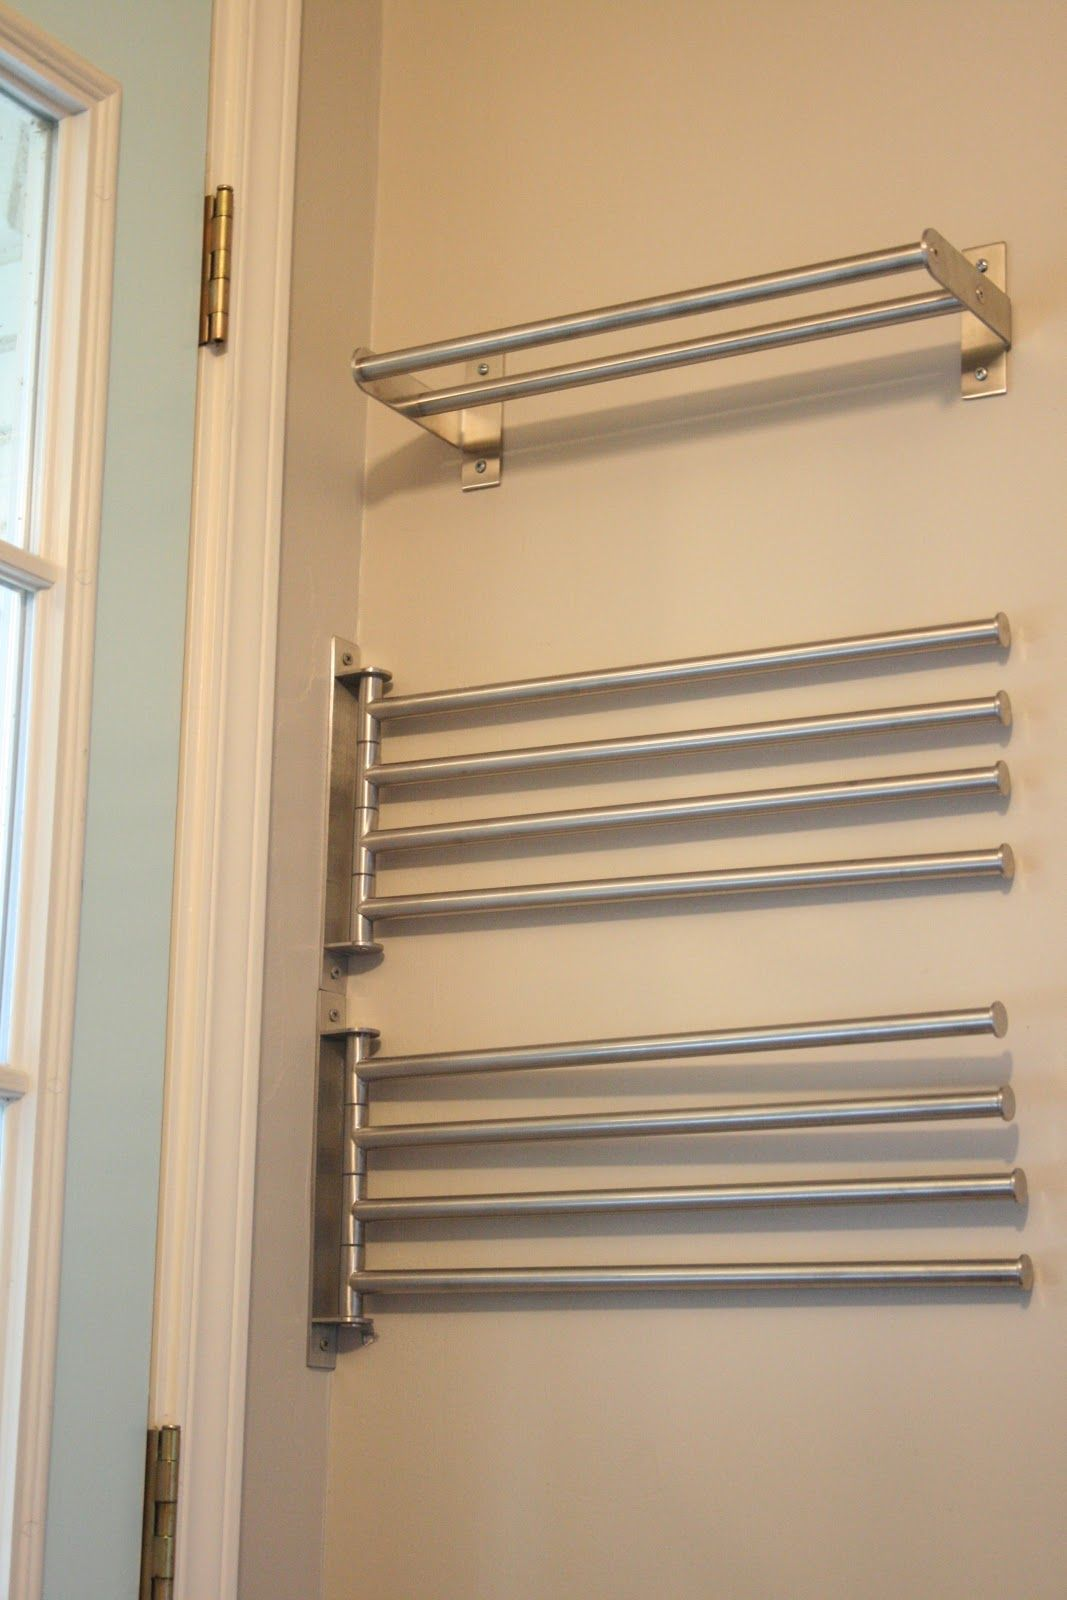 Hope Longing Life Ikea Towel Bars For Drying Clothes In The Laundry Room I Don T Know Why Didn Think About Bar